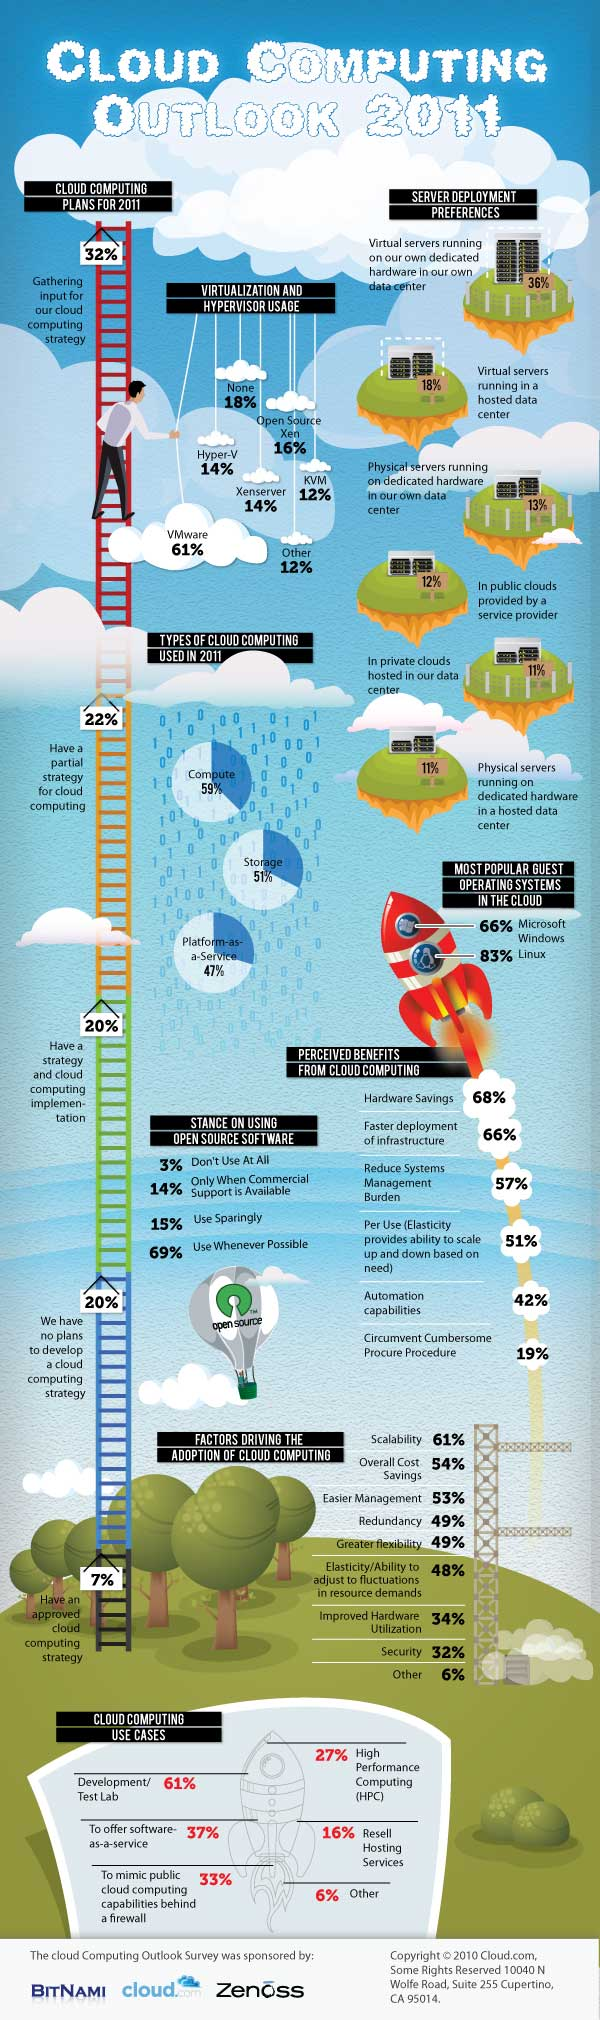 Cloud Computing Outlook 2011 Infographic